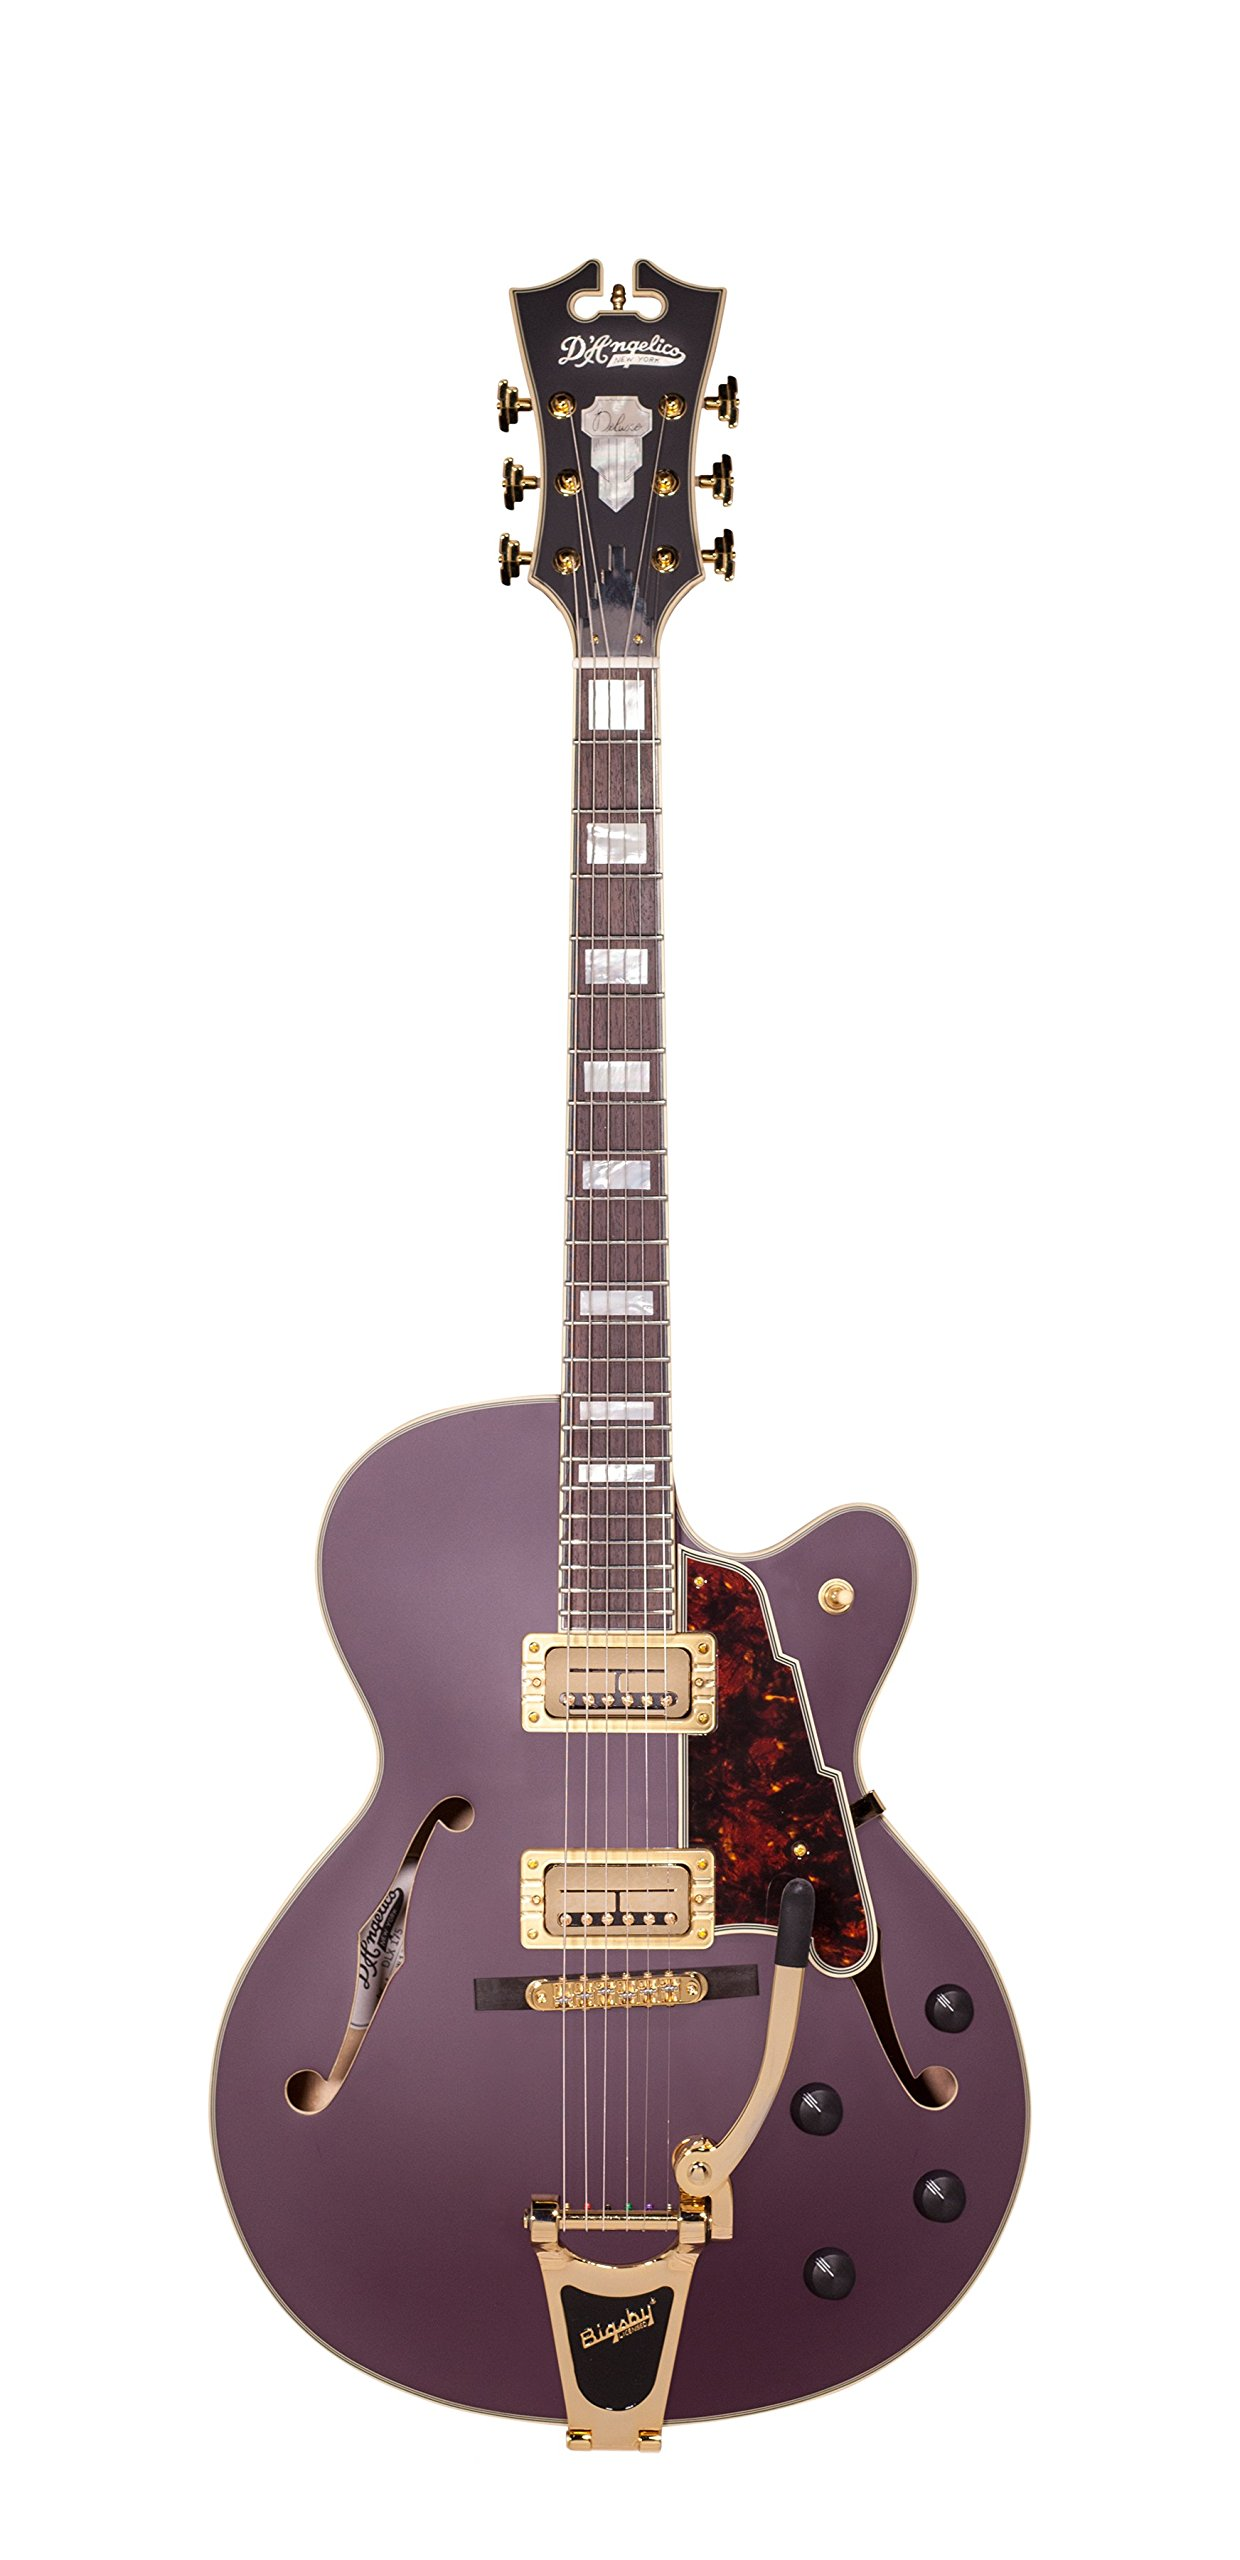 Cheap D Angelico Deluxe 175 Electric Guitar - Matte Plum Black Friday & Cyber Monday 2019